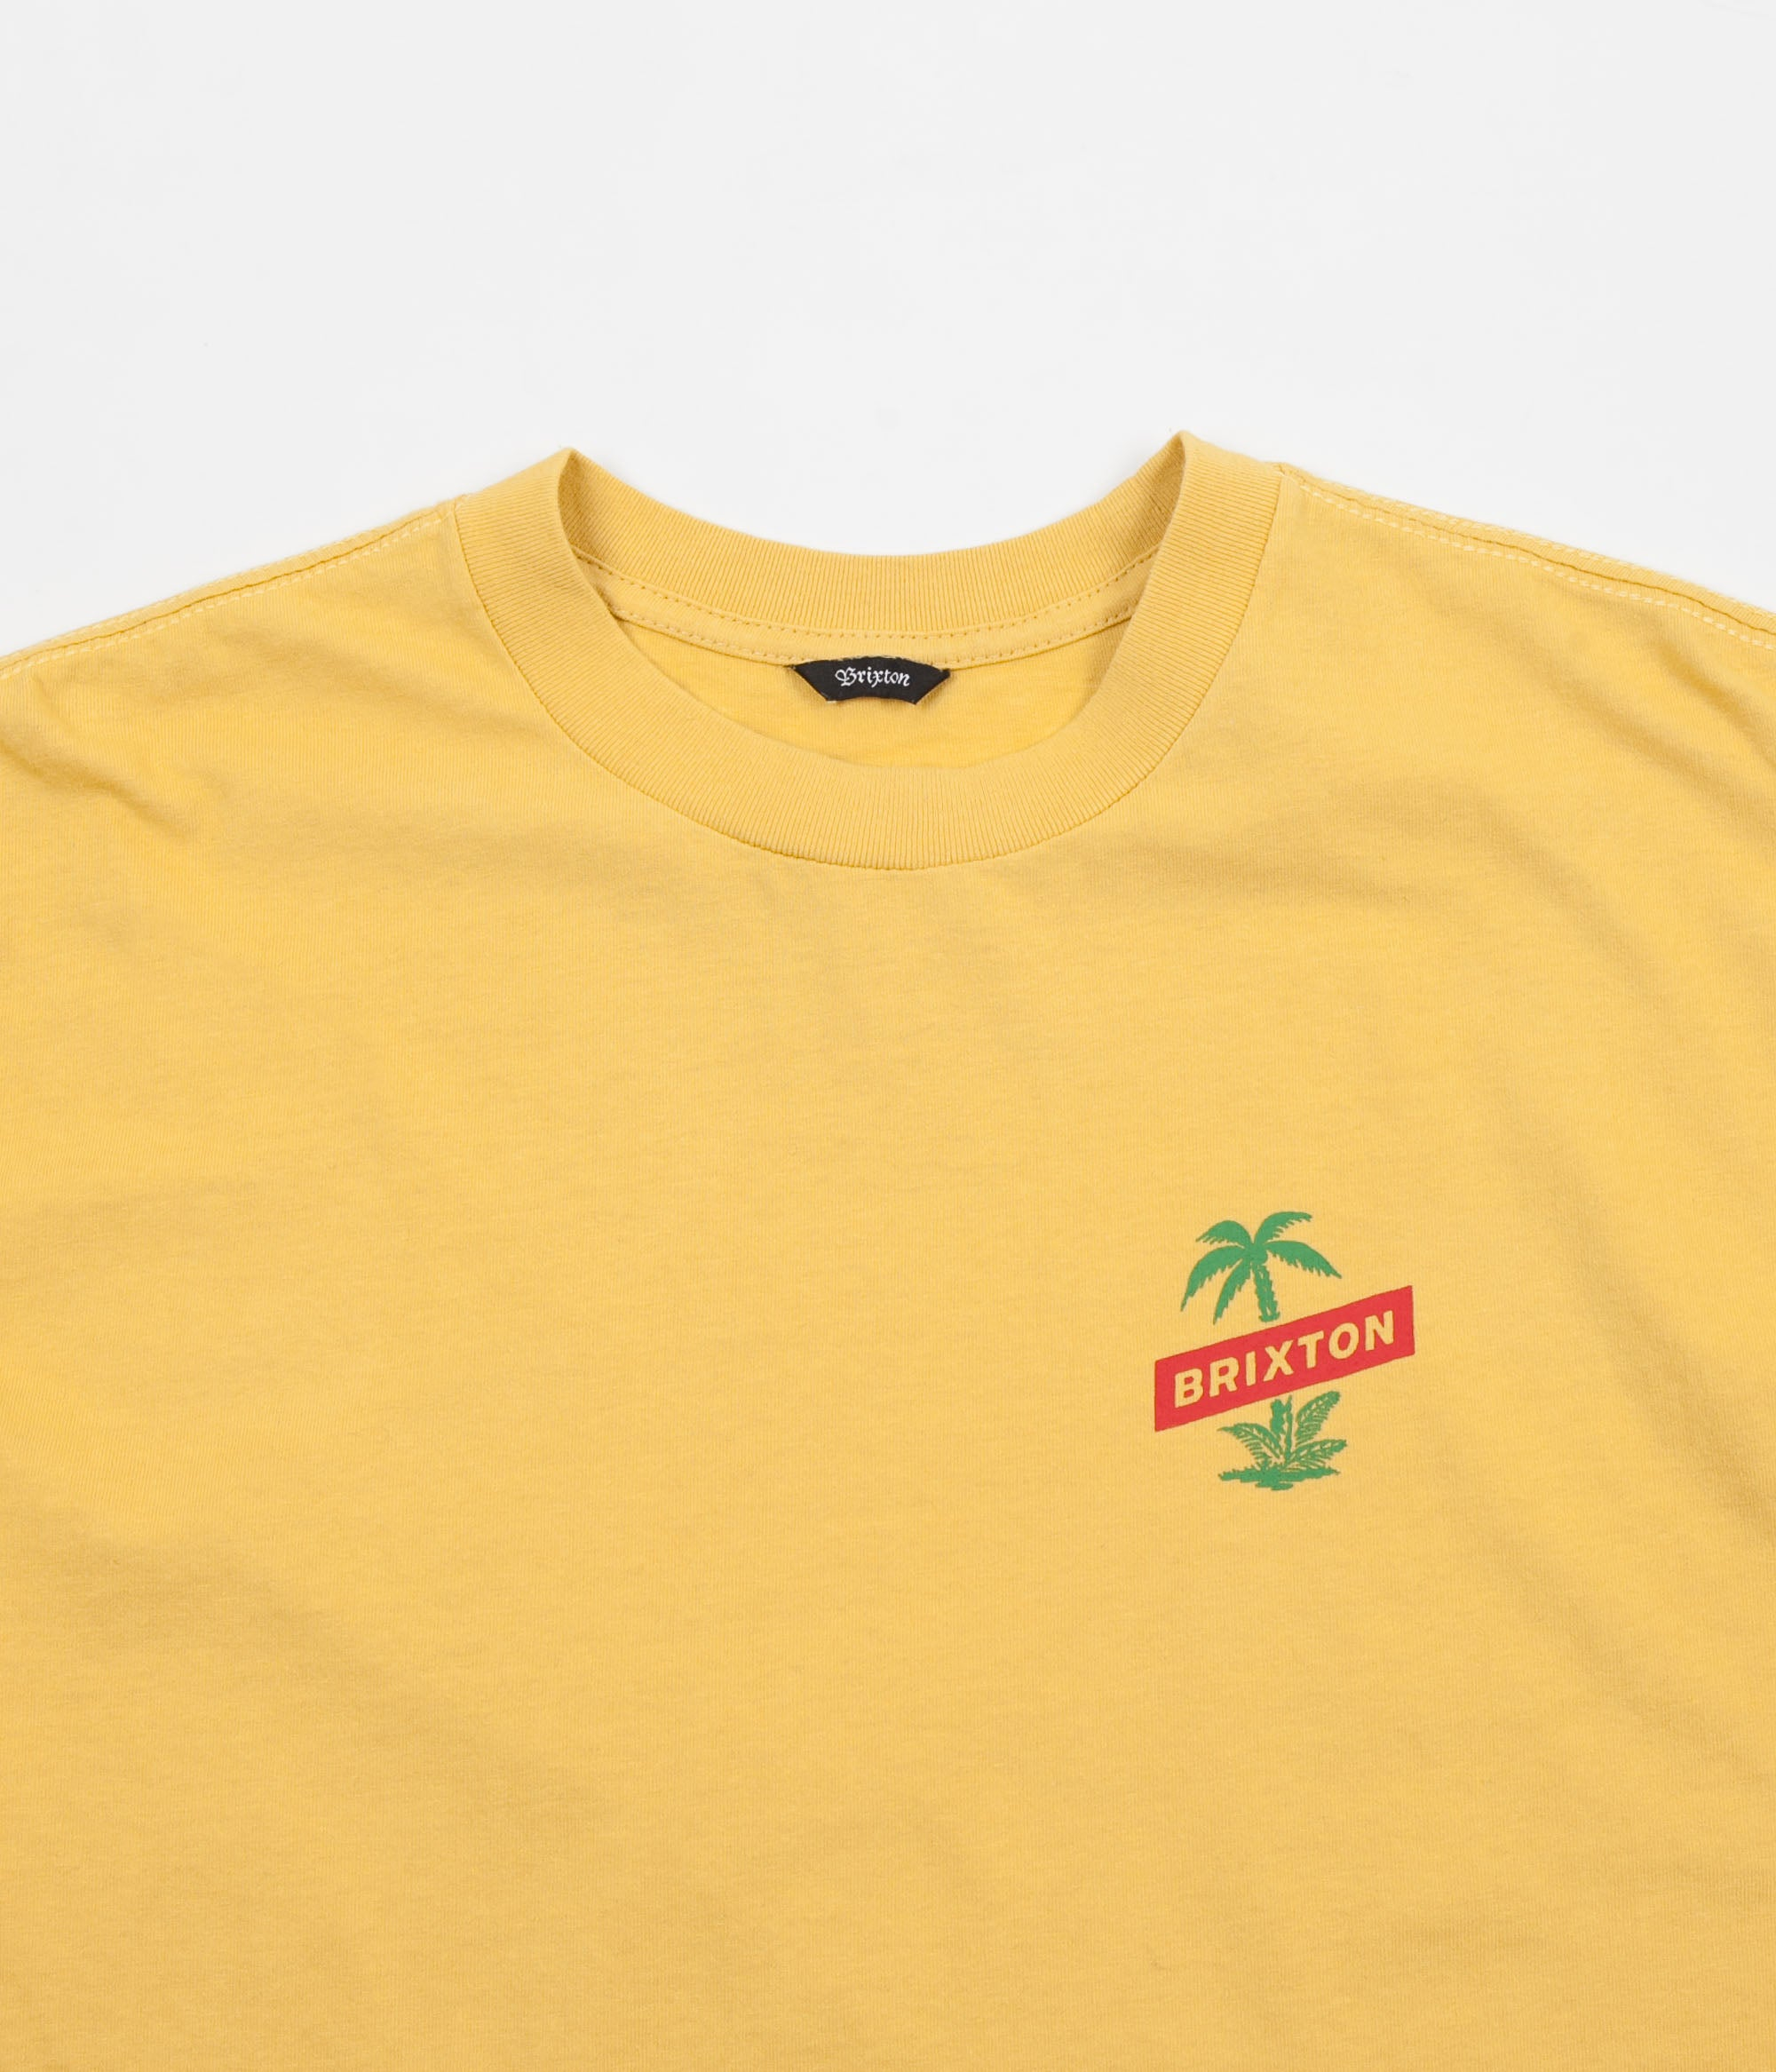 Brixton Tosh Long Sleeve T-Shirt - Washed Yellow